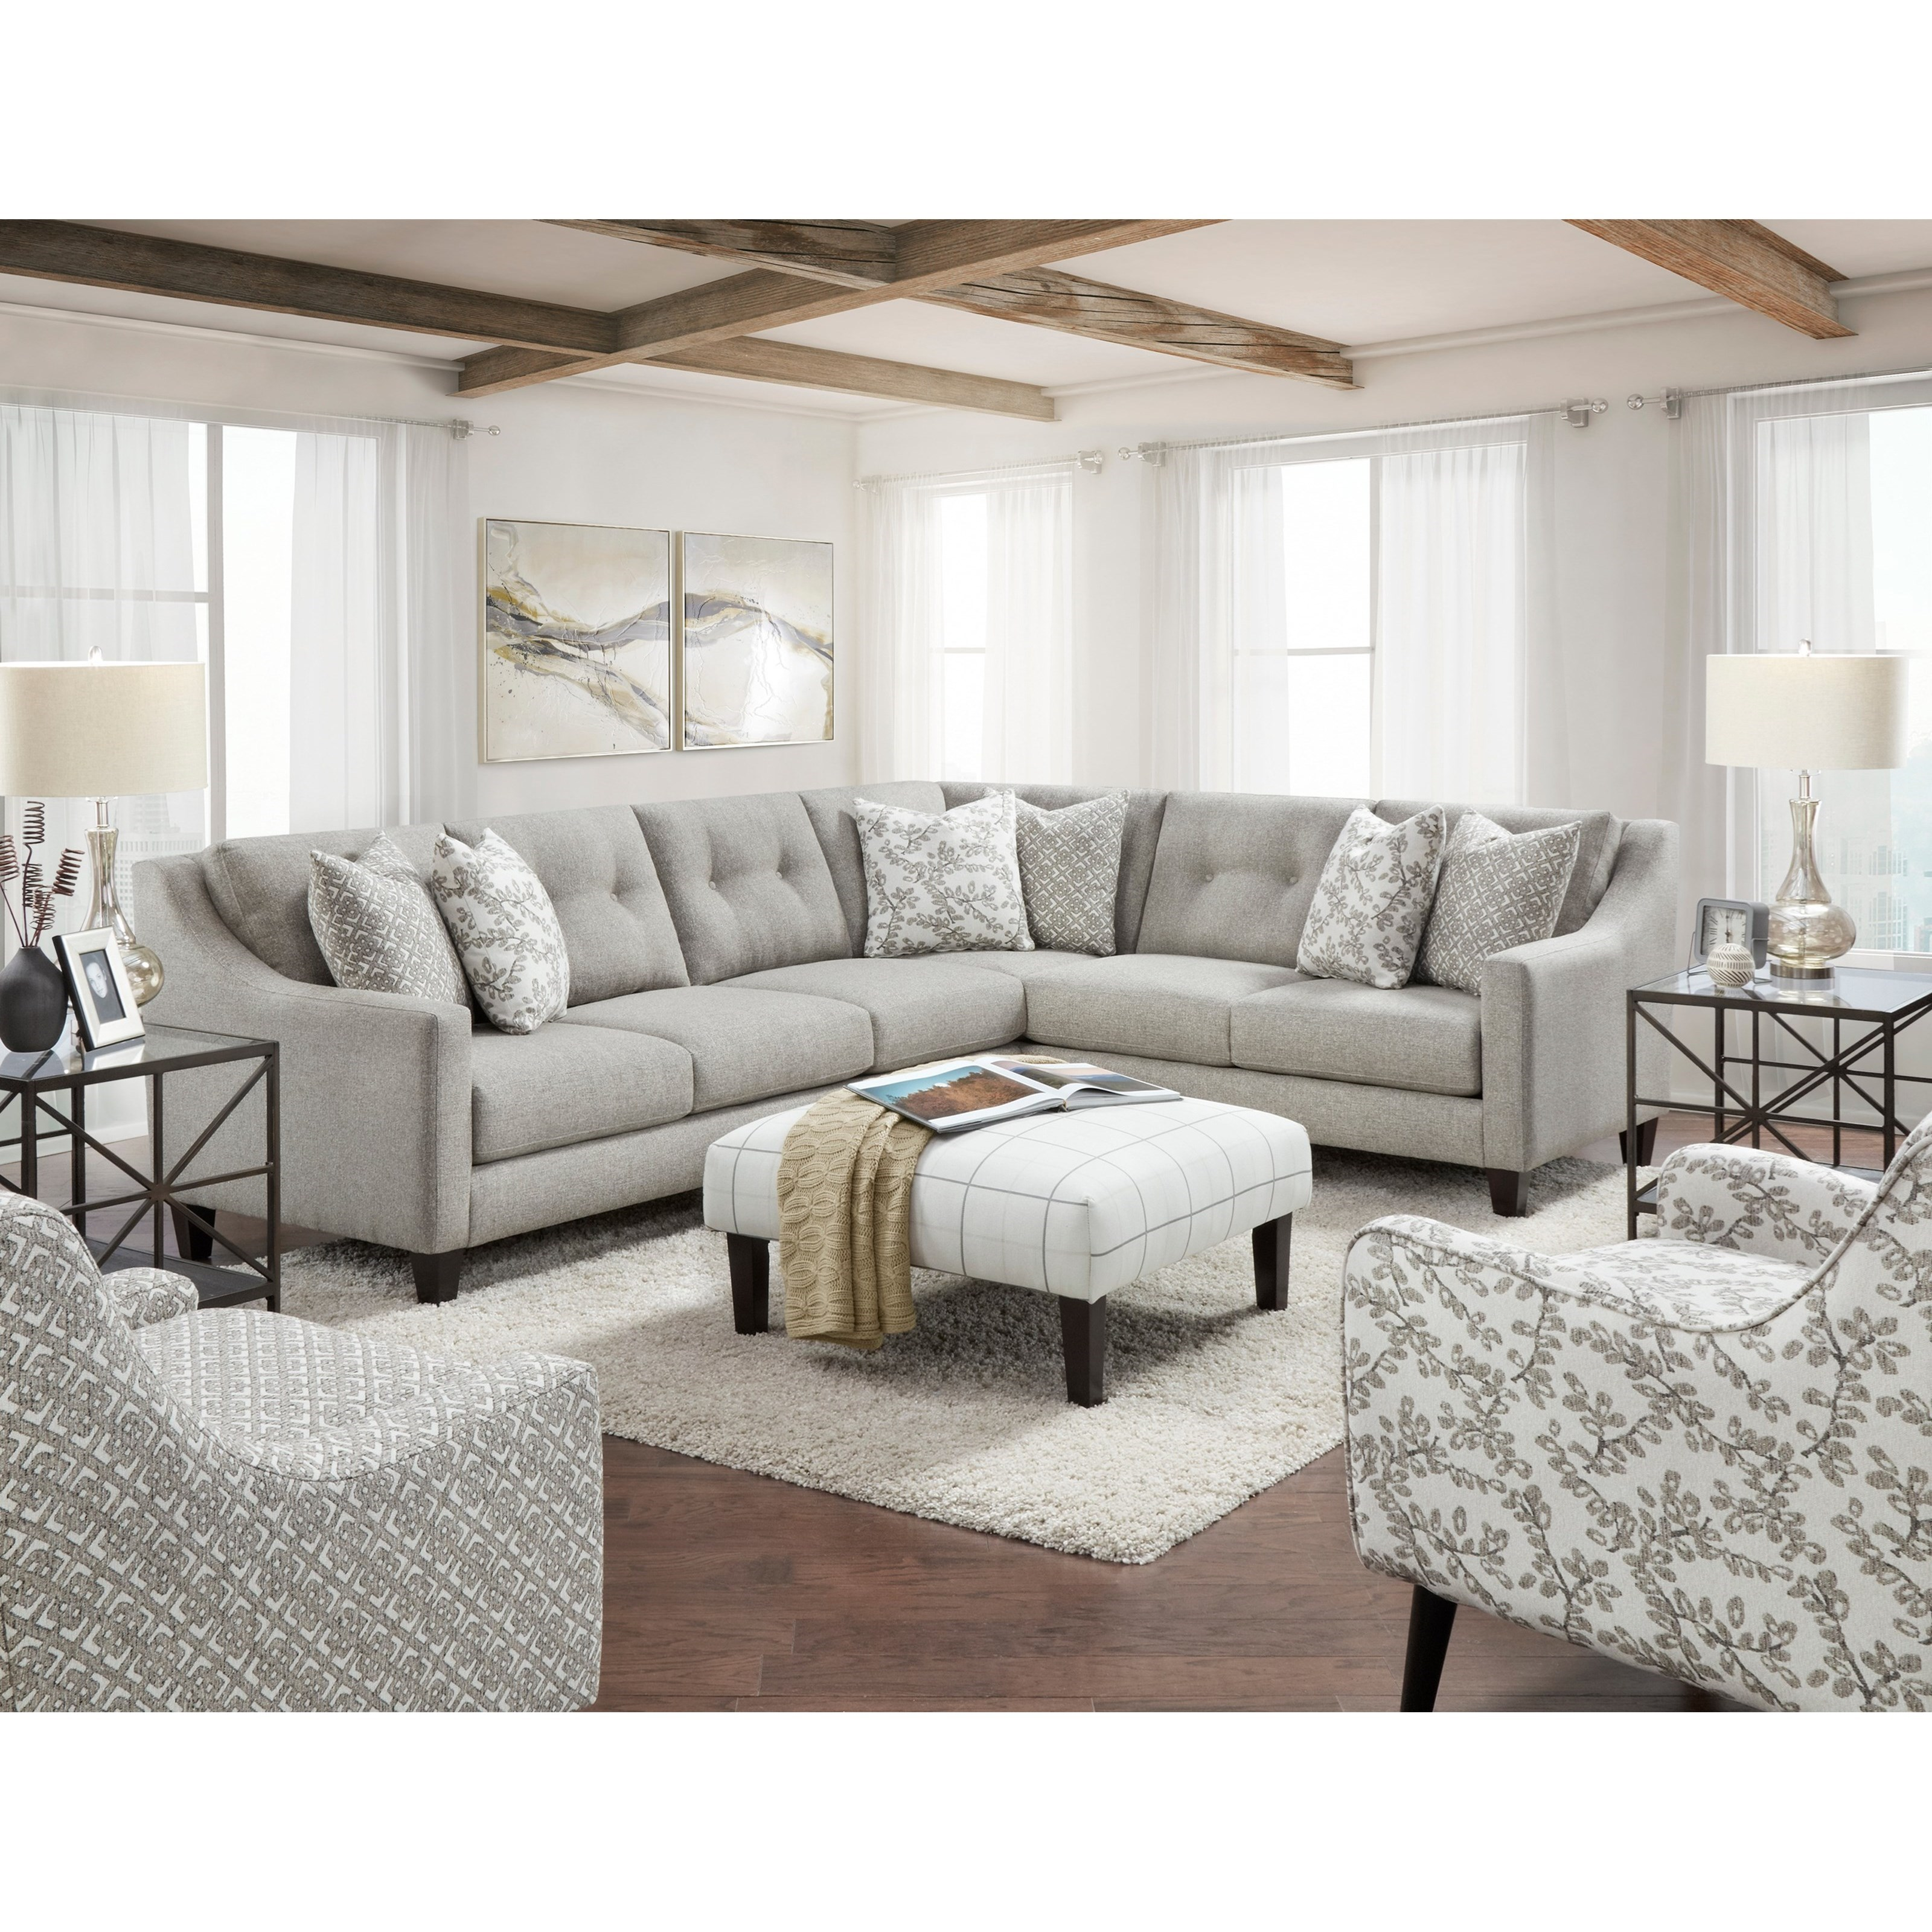 3280 Living Room Group by Fusion Furniture at Wilson's Furniture